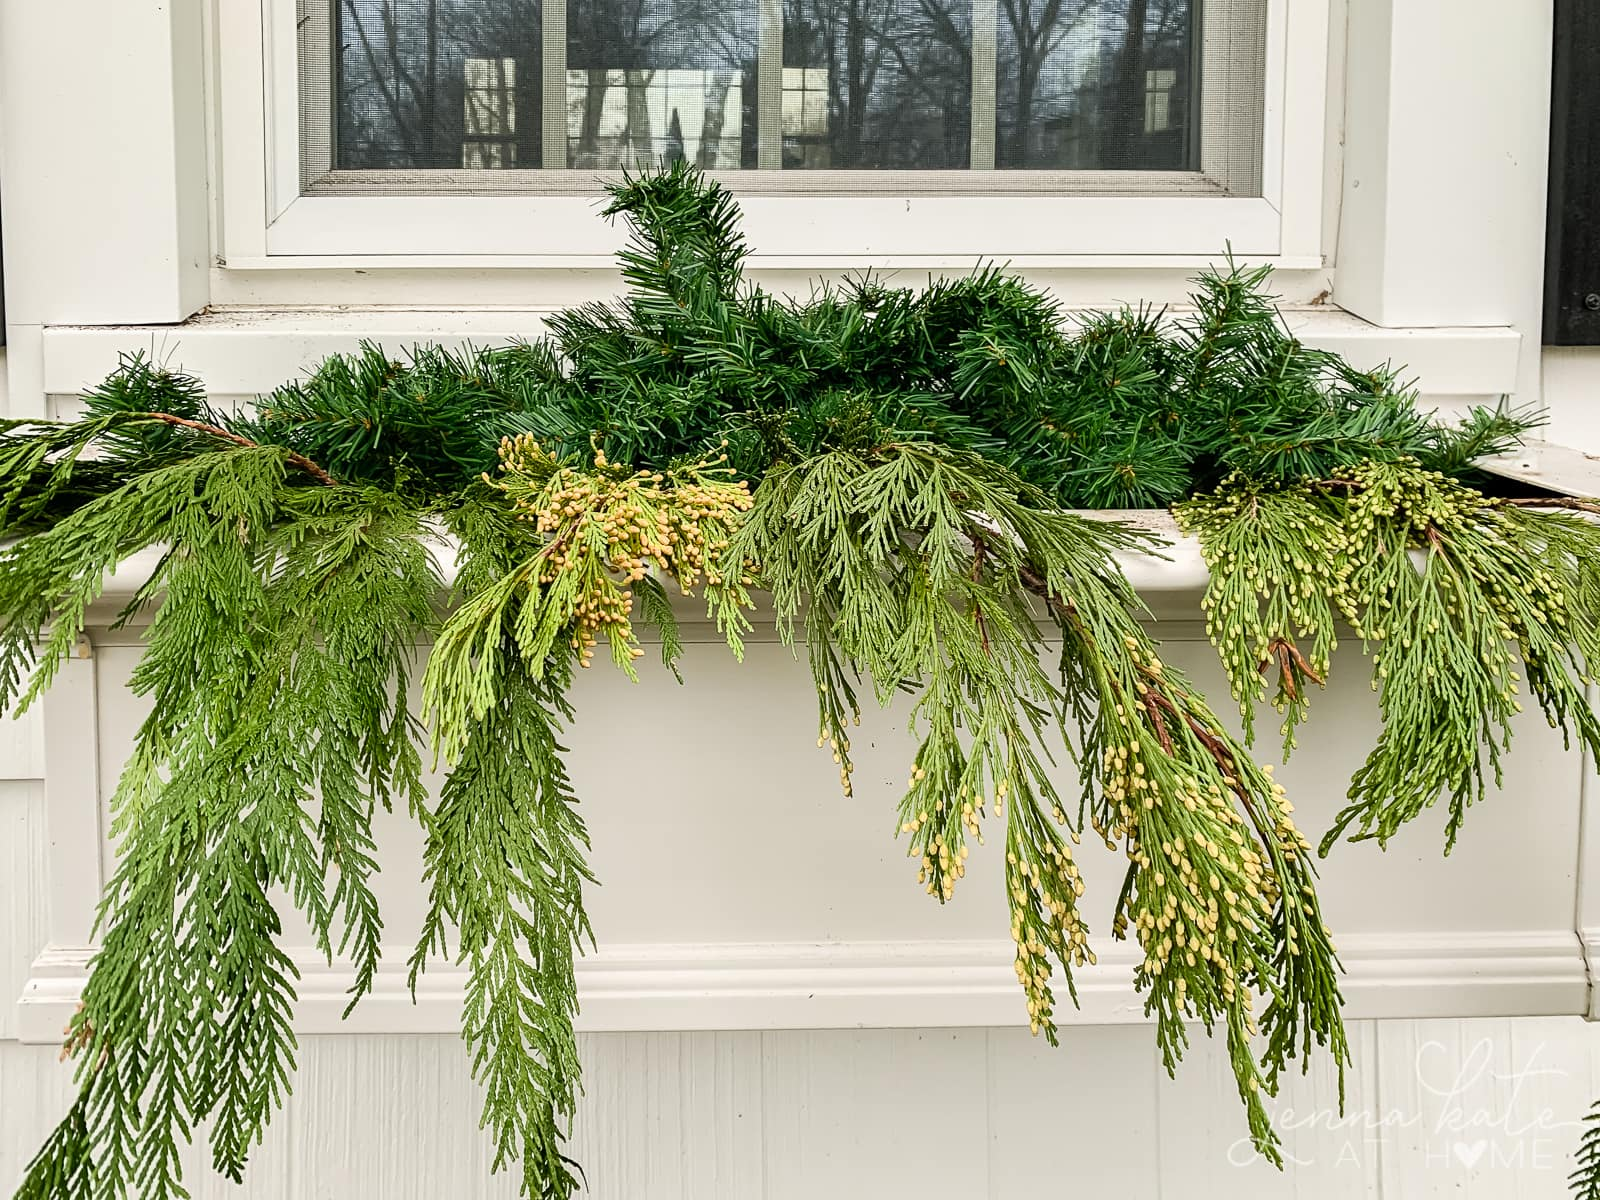 Cedar branches draping over the front of the window box